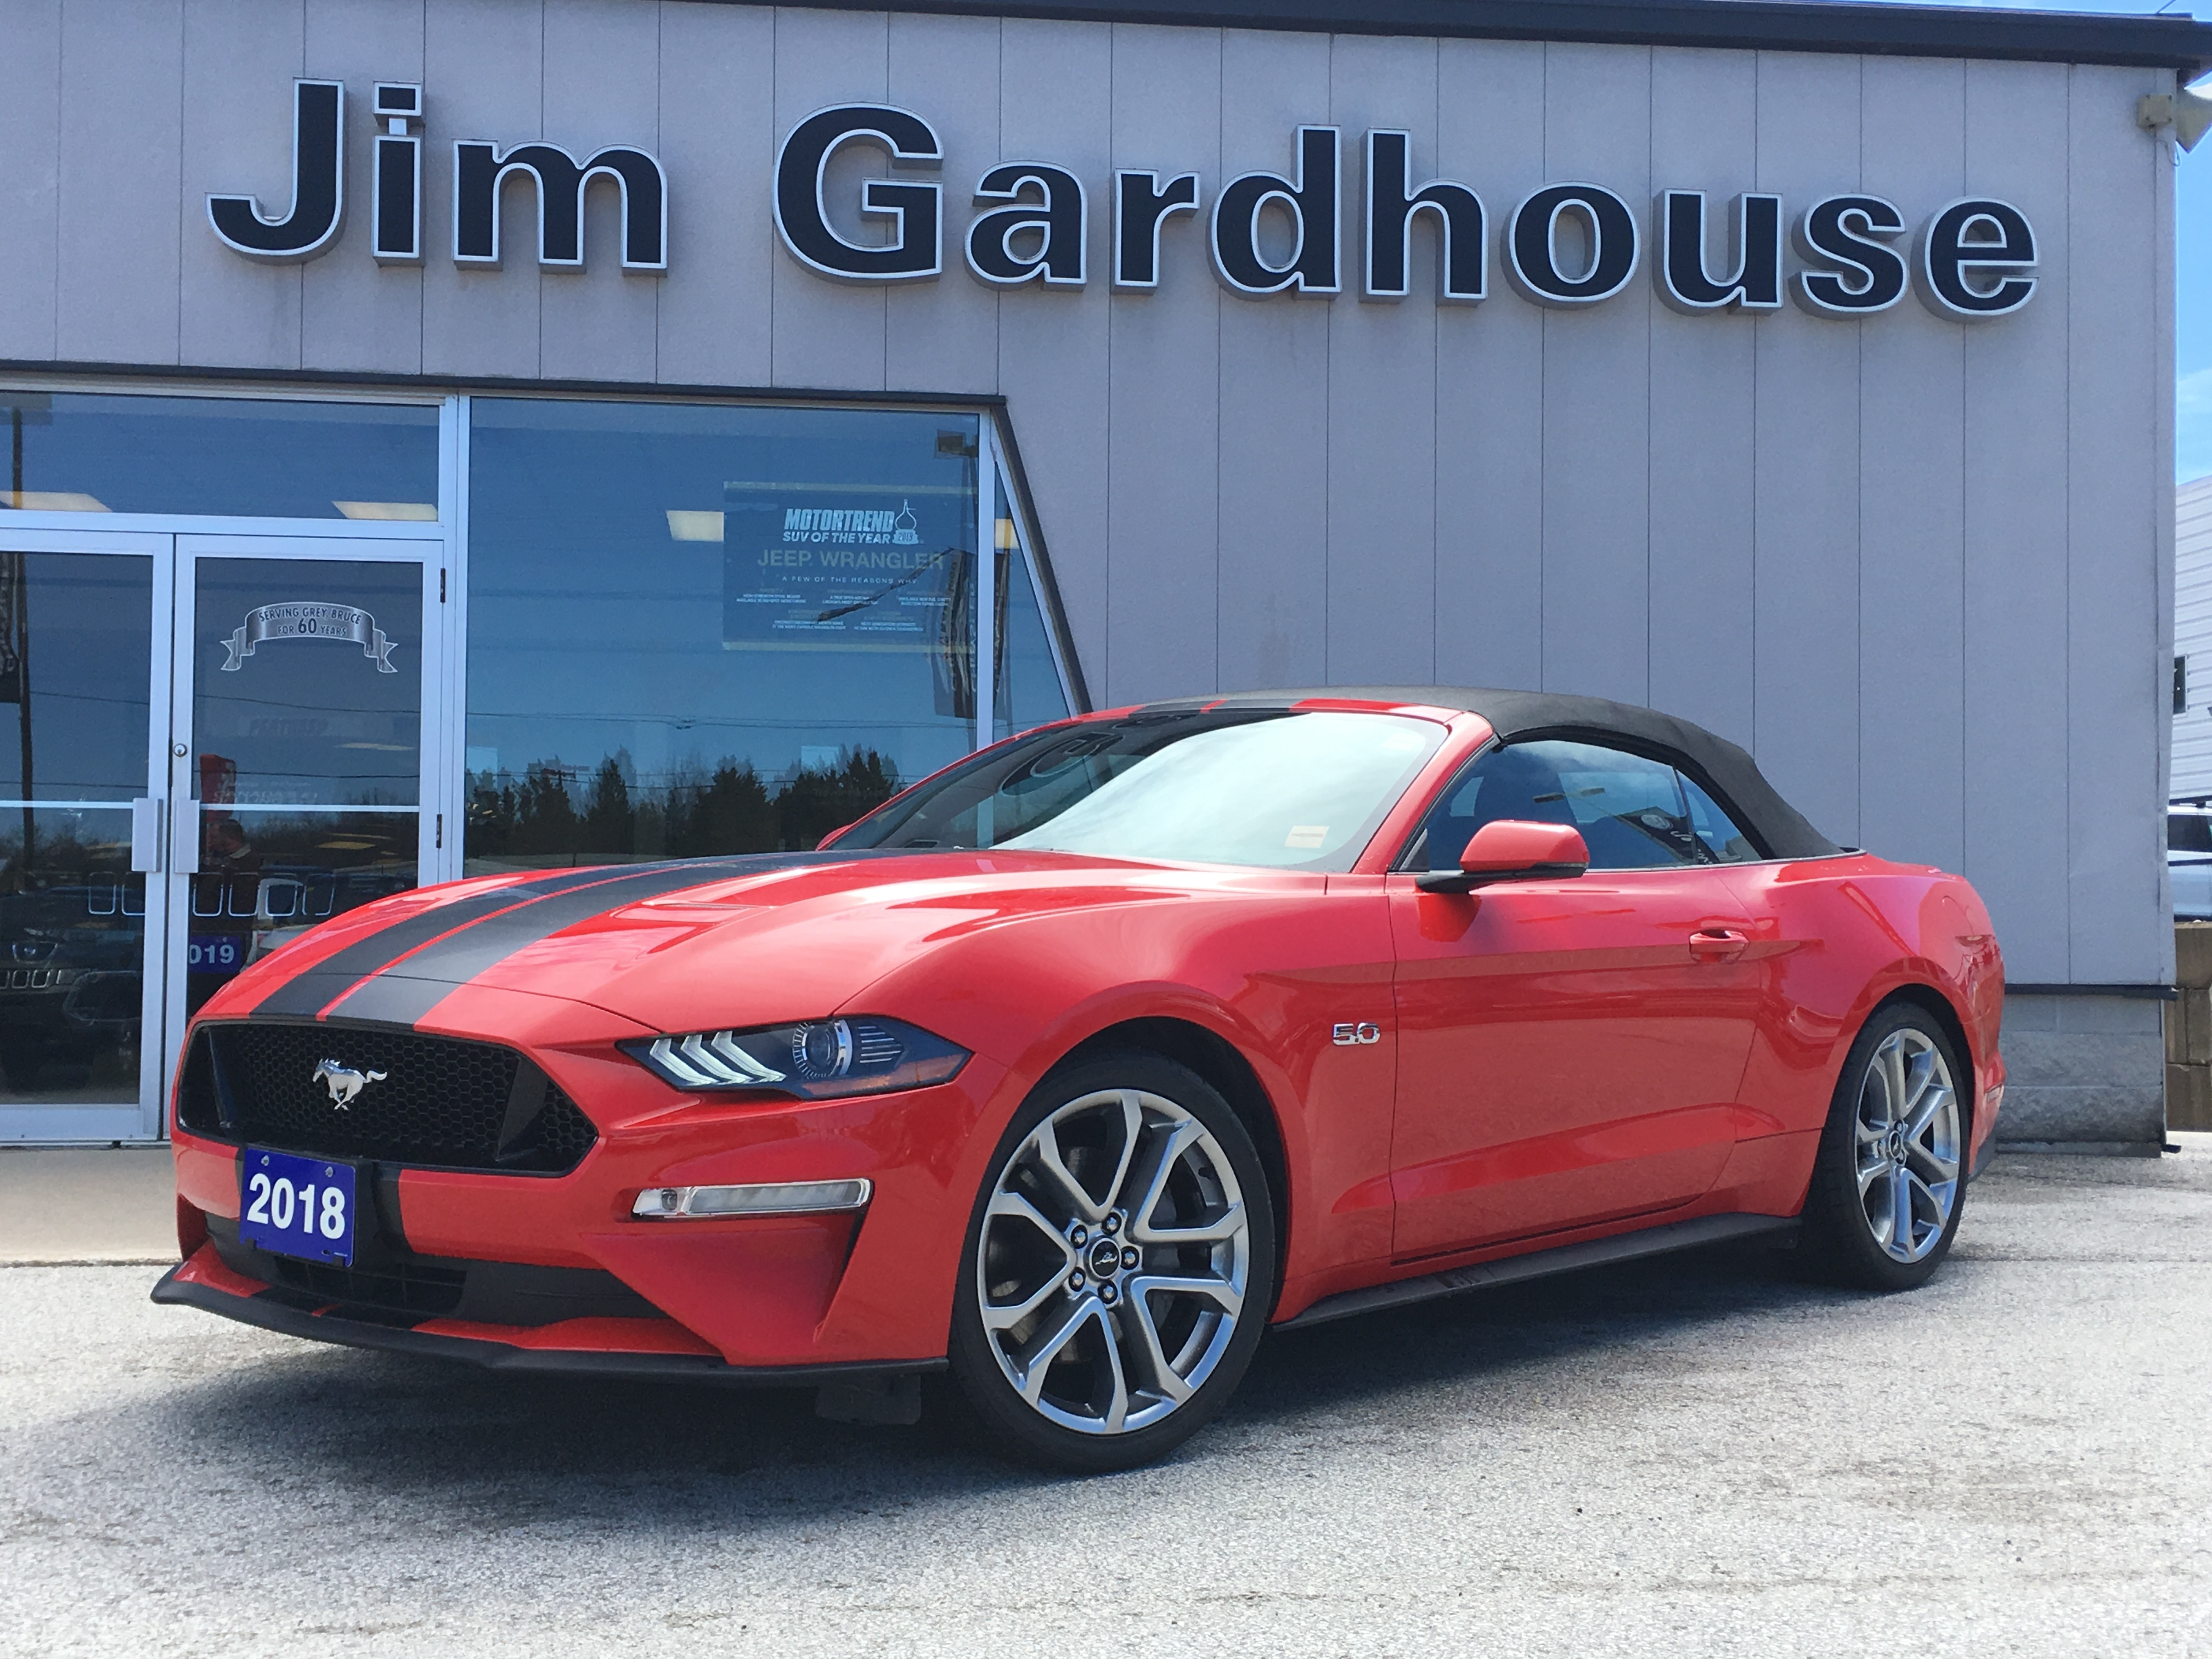 2018 Ford Mustang GT Premium 5.0 V8, Heated Seats, Remote Start Convertible